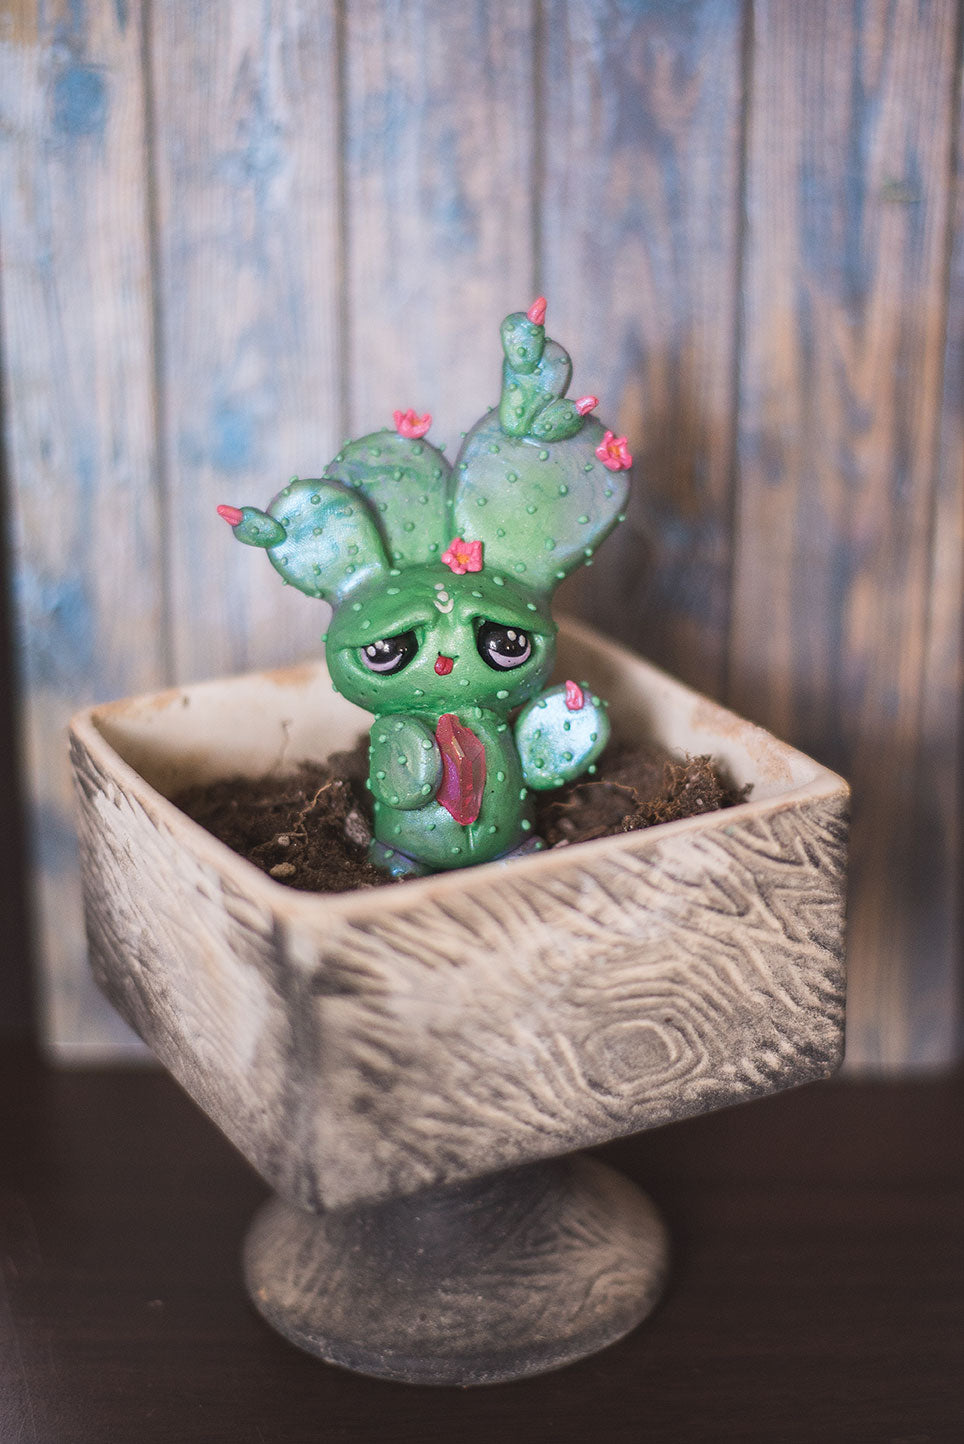 Custom hand sculpted polymer clay green cactus with pink flowers mish in pot holding pink aura quartz